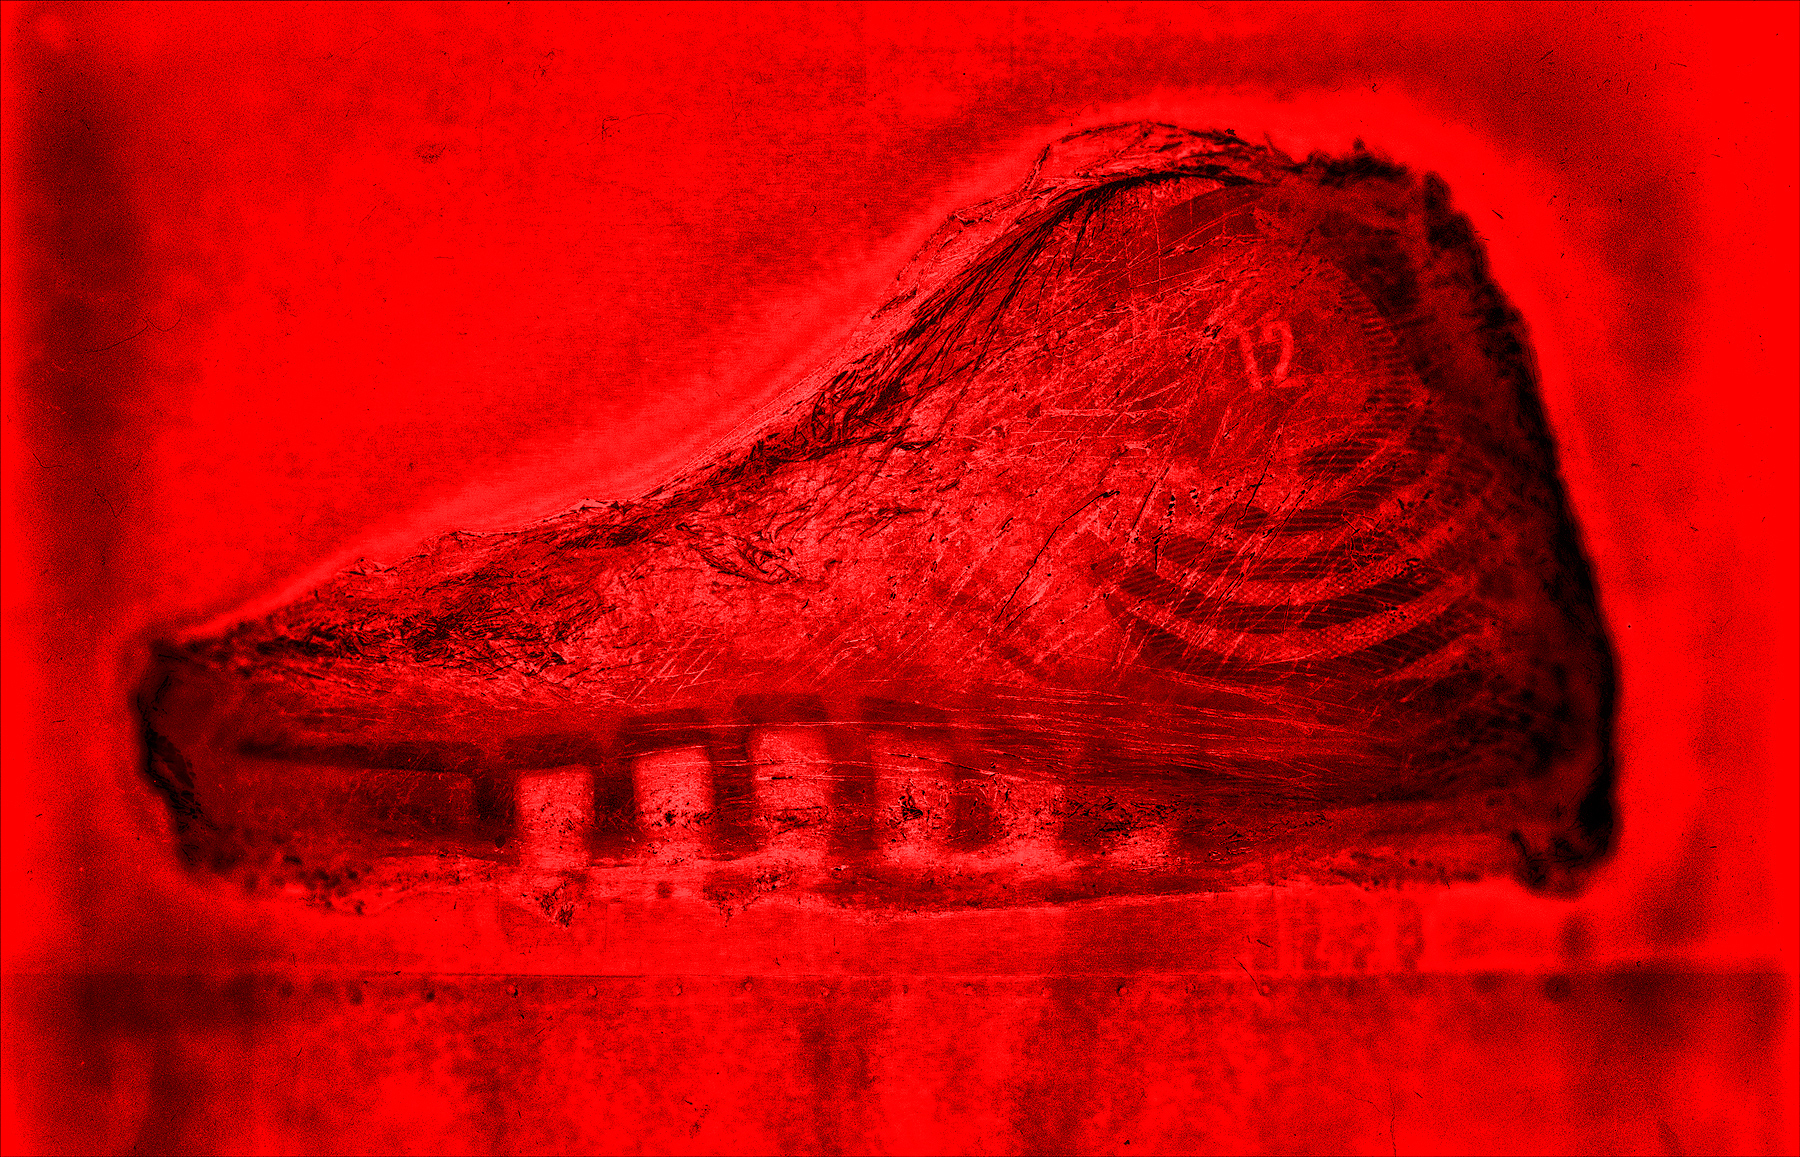 X-ray of sneakers  | Dovis Bird Agency Reps